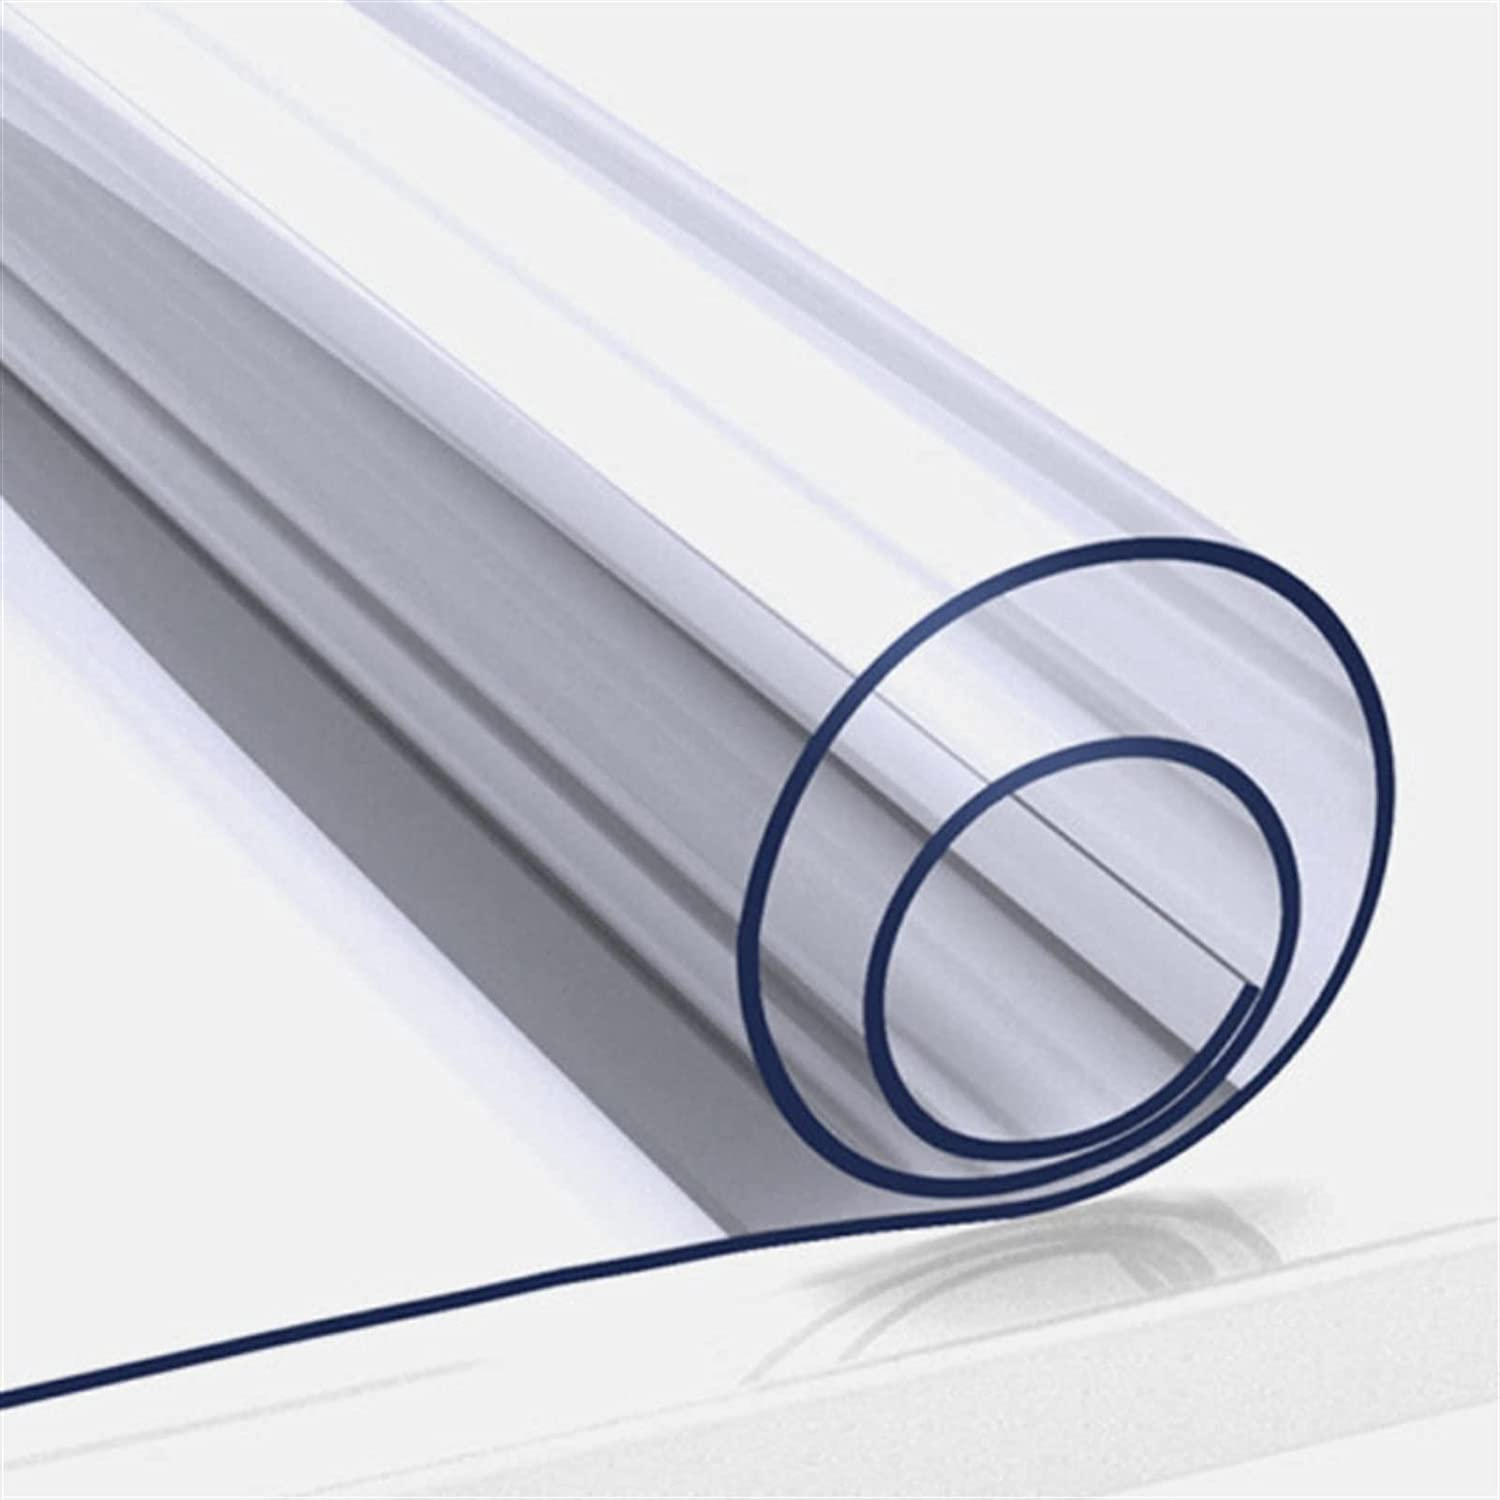 APYMYHW 1.0mm Selling rankings 2021 spring and summer new Waterproof PVC Cloth Cover Transparent Table